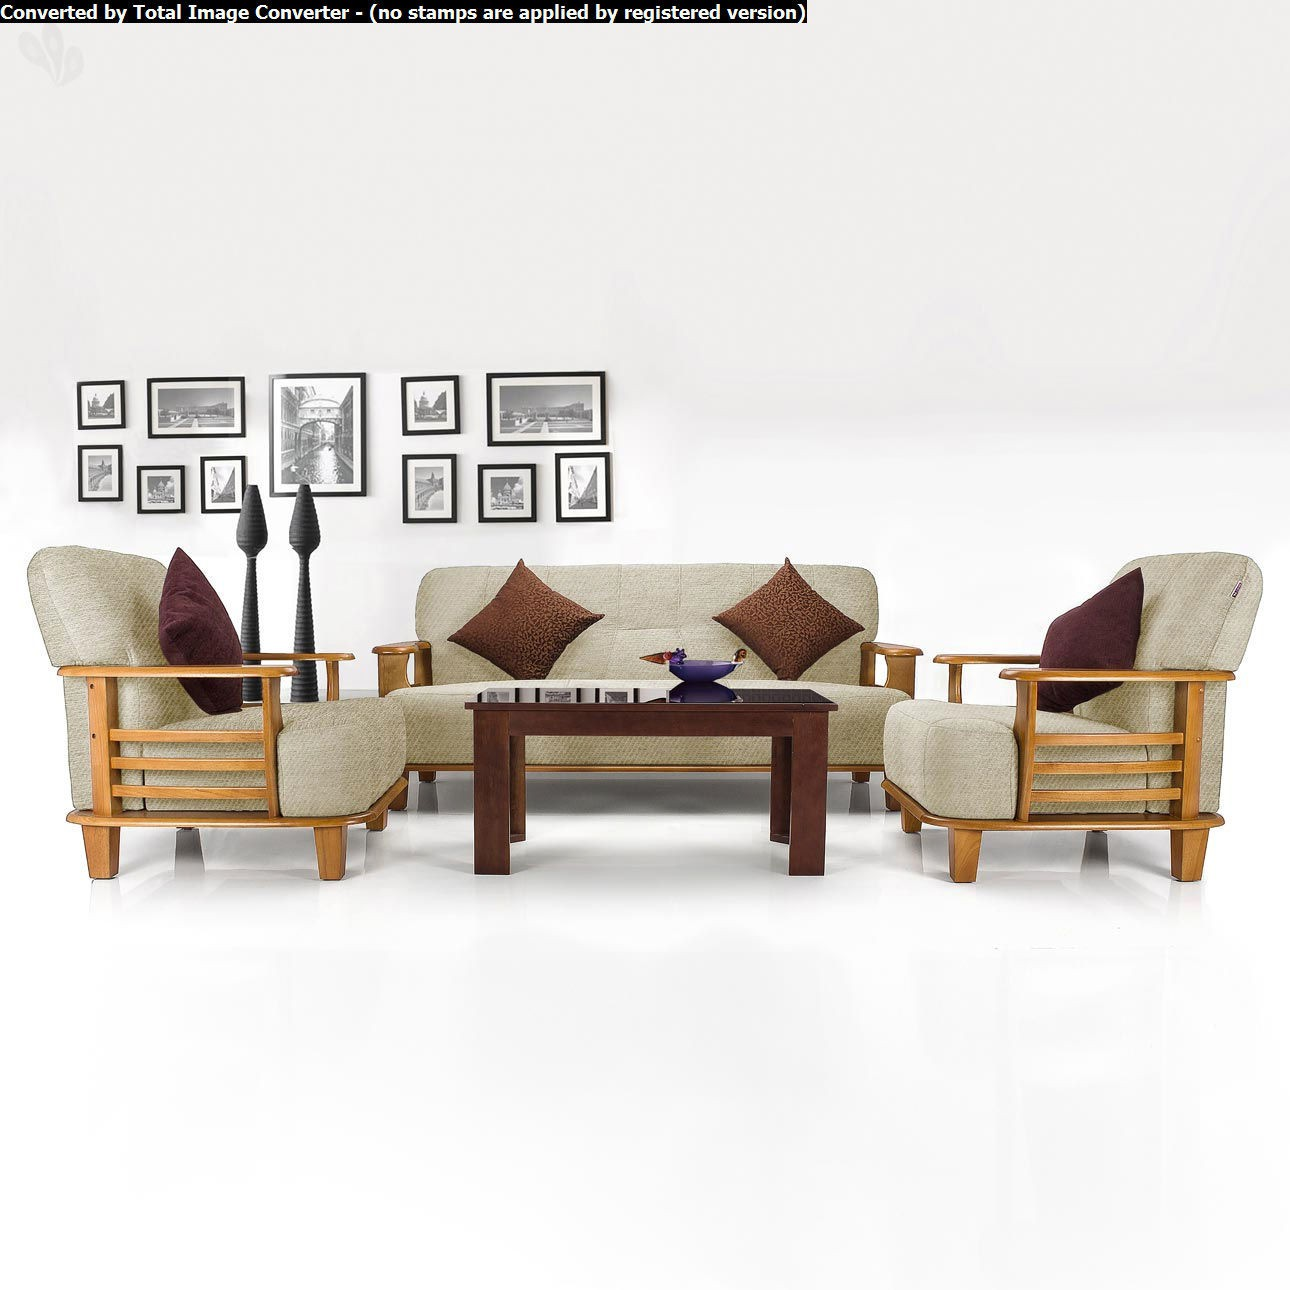 Sofa Set Price Rate Vive Phoenix Solid Wood 3 43 1 43 1 Sofa Set Configuration